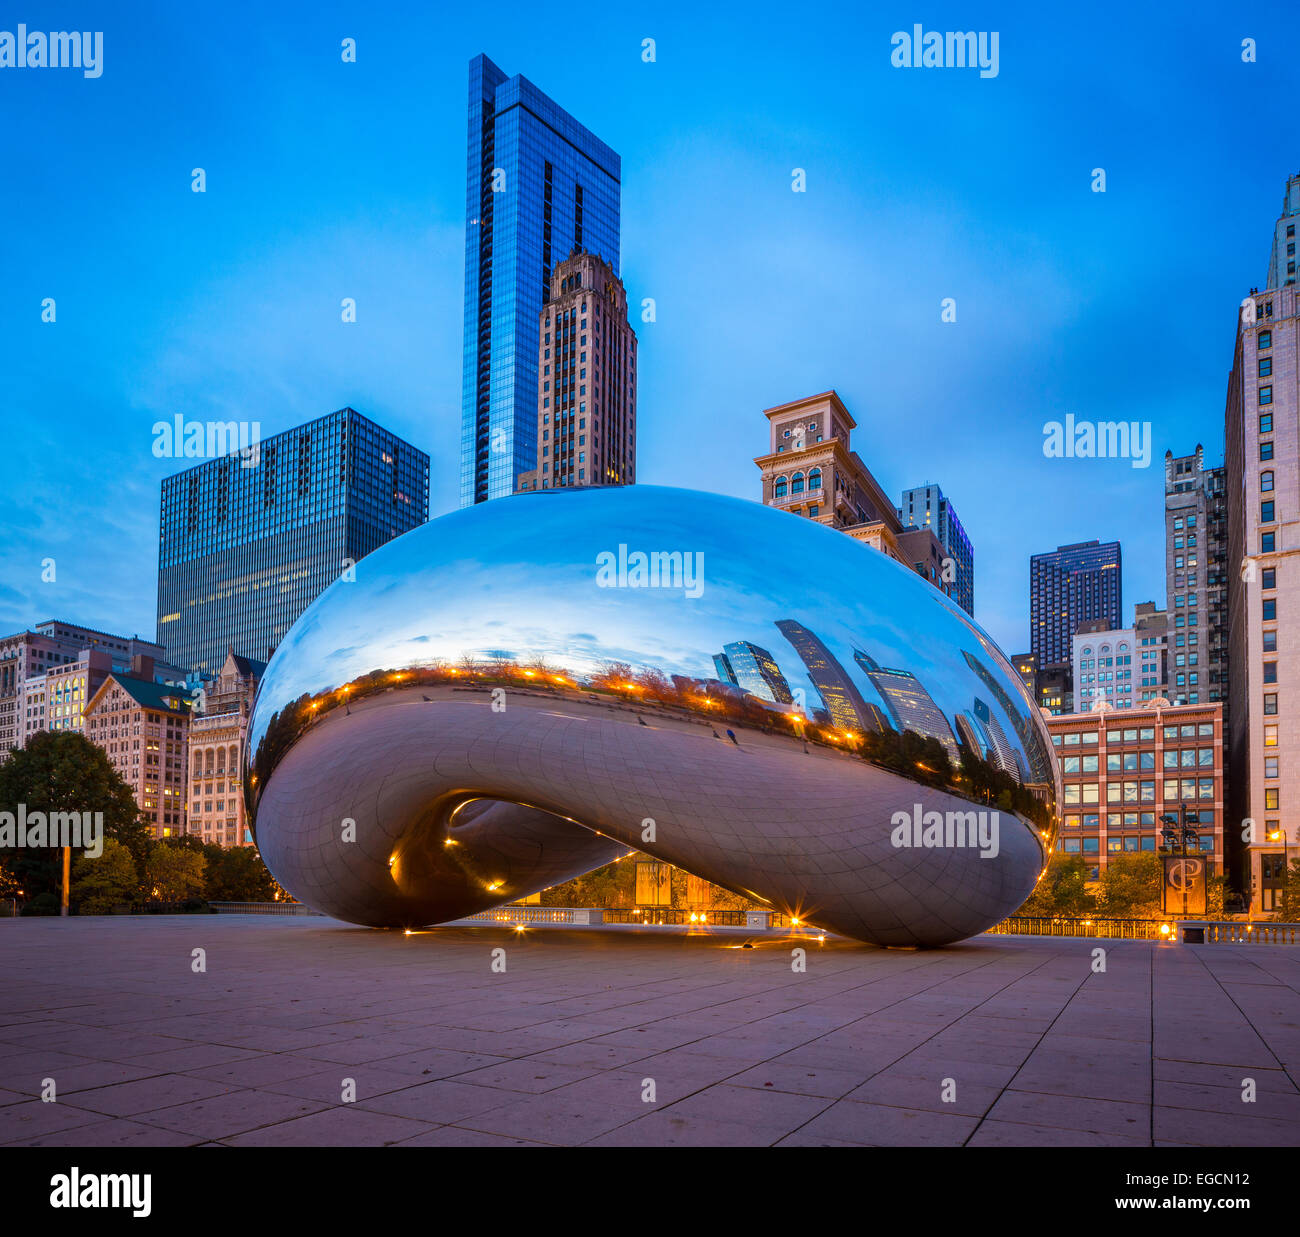 Cloud Gate is a public sculpture in AT&T Plaza at Millennium Park in the Loop community area of Chicago, Illinois - Stock Image